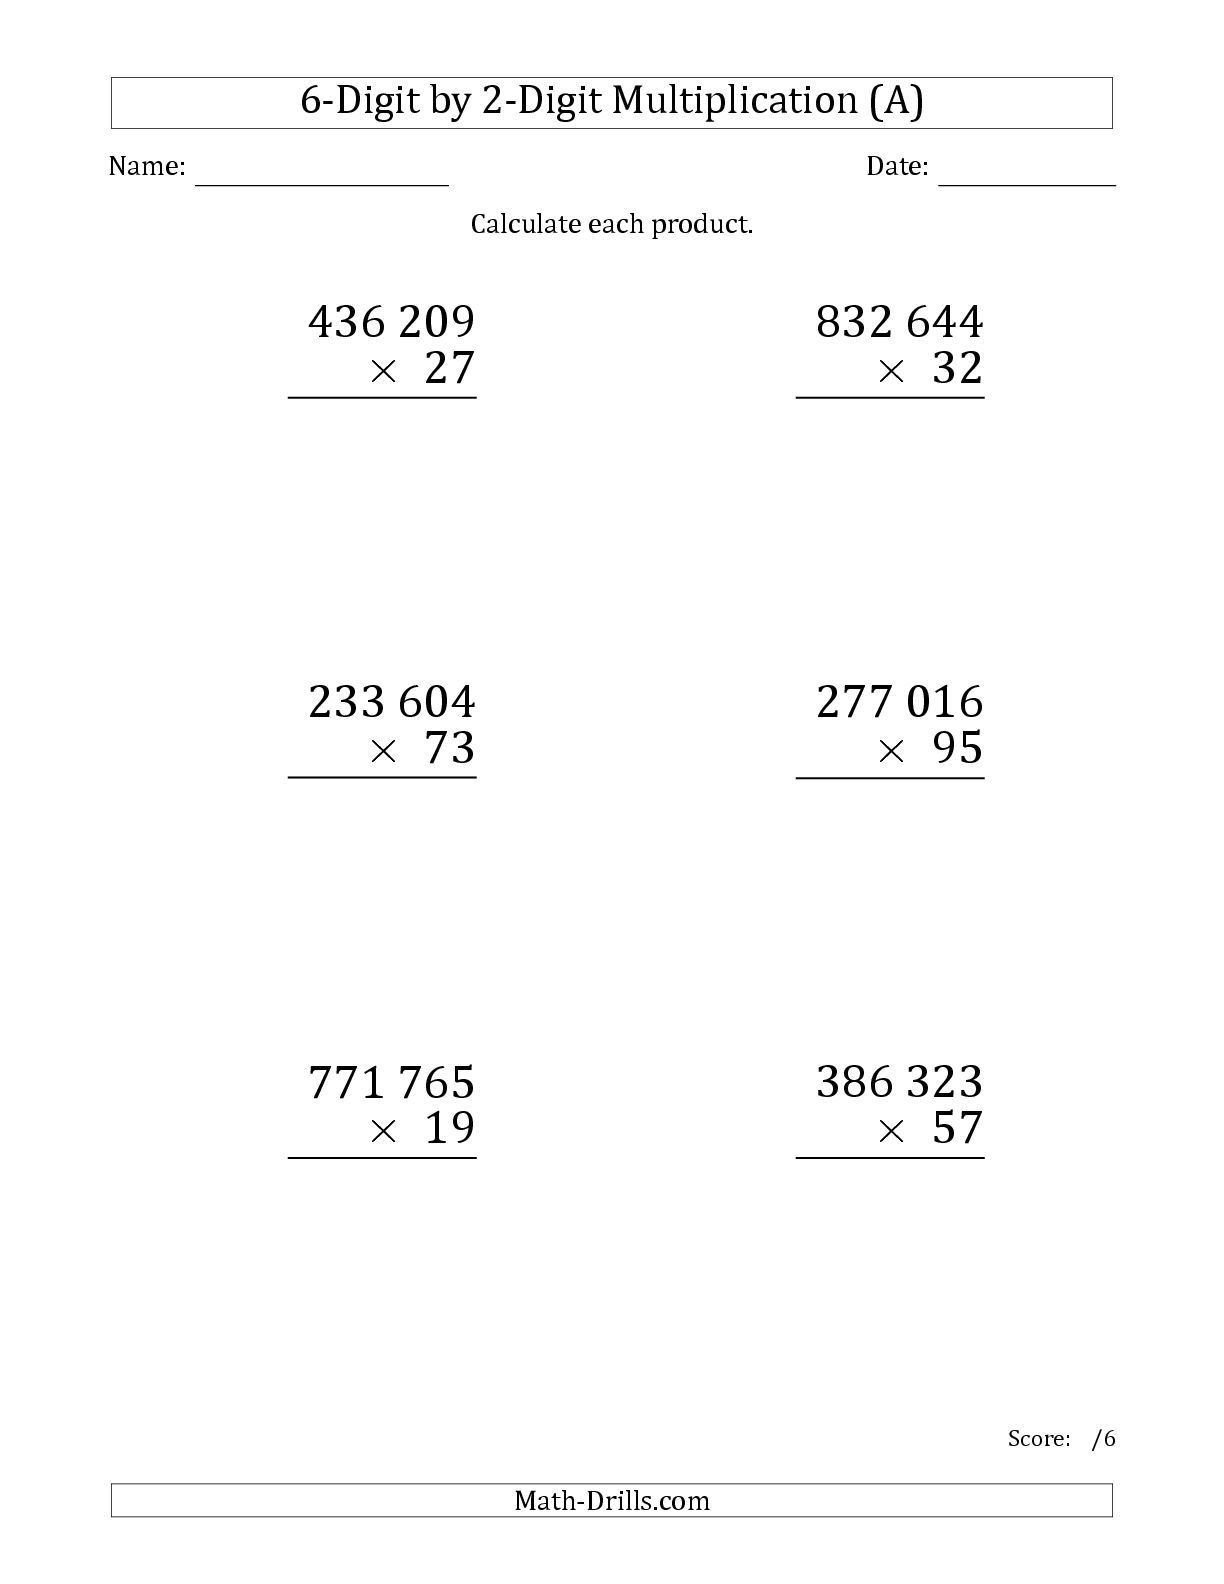 The Multiplying 2 Digit By 1 Digit Numbers Large Print A Math Worksheet From Multiplication Worksheets Math Multiplication Worksheets Free Math Worksheets